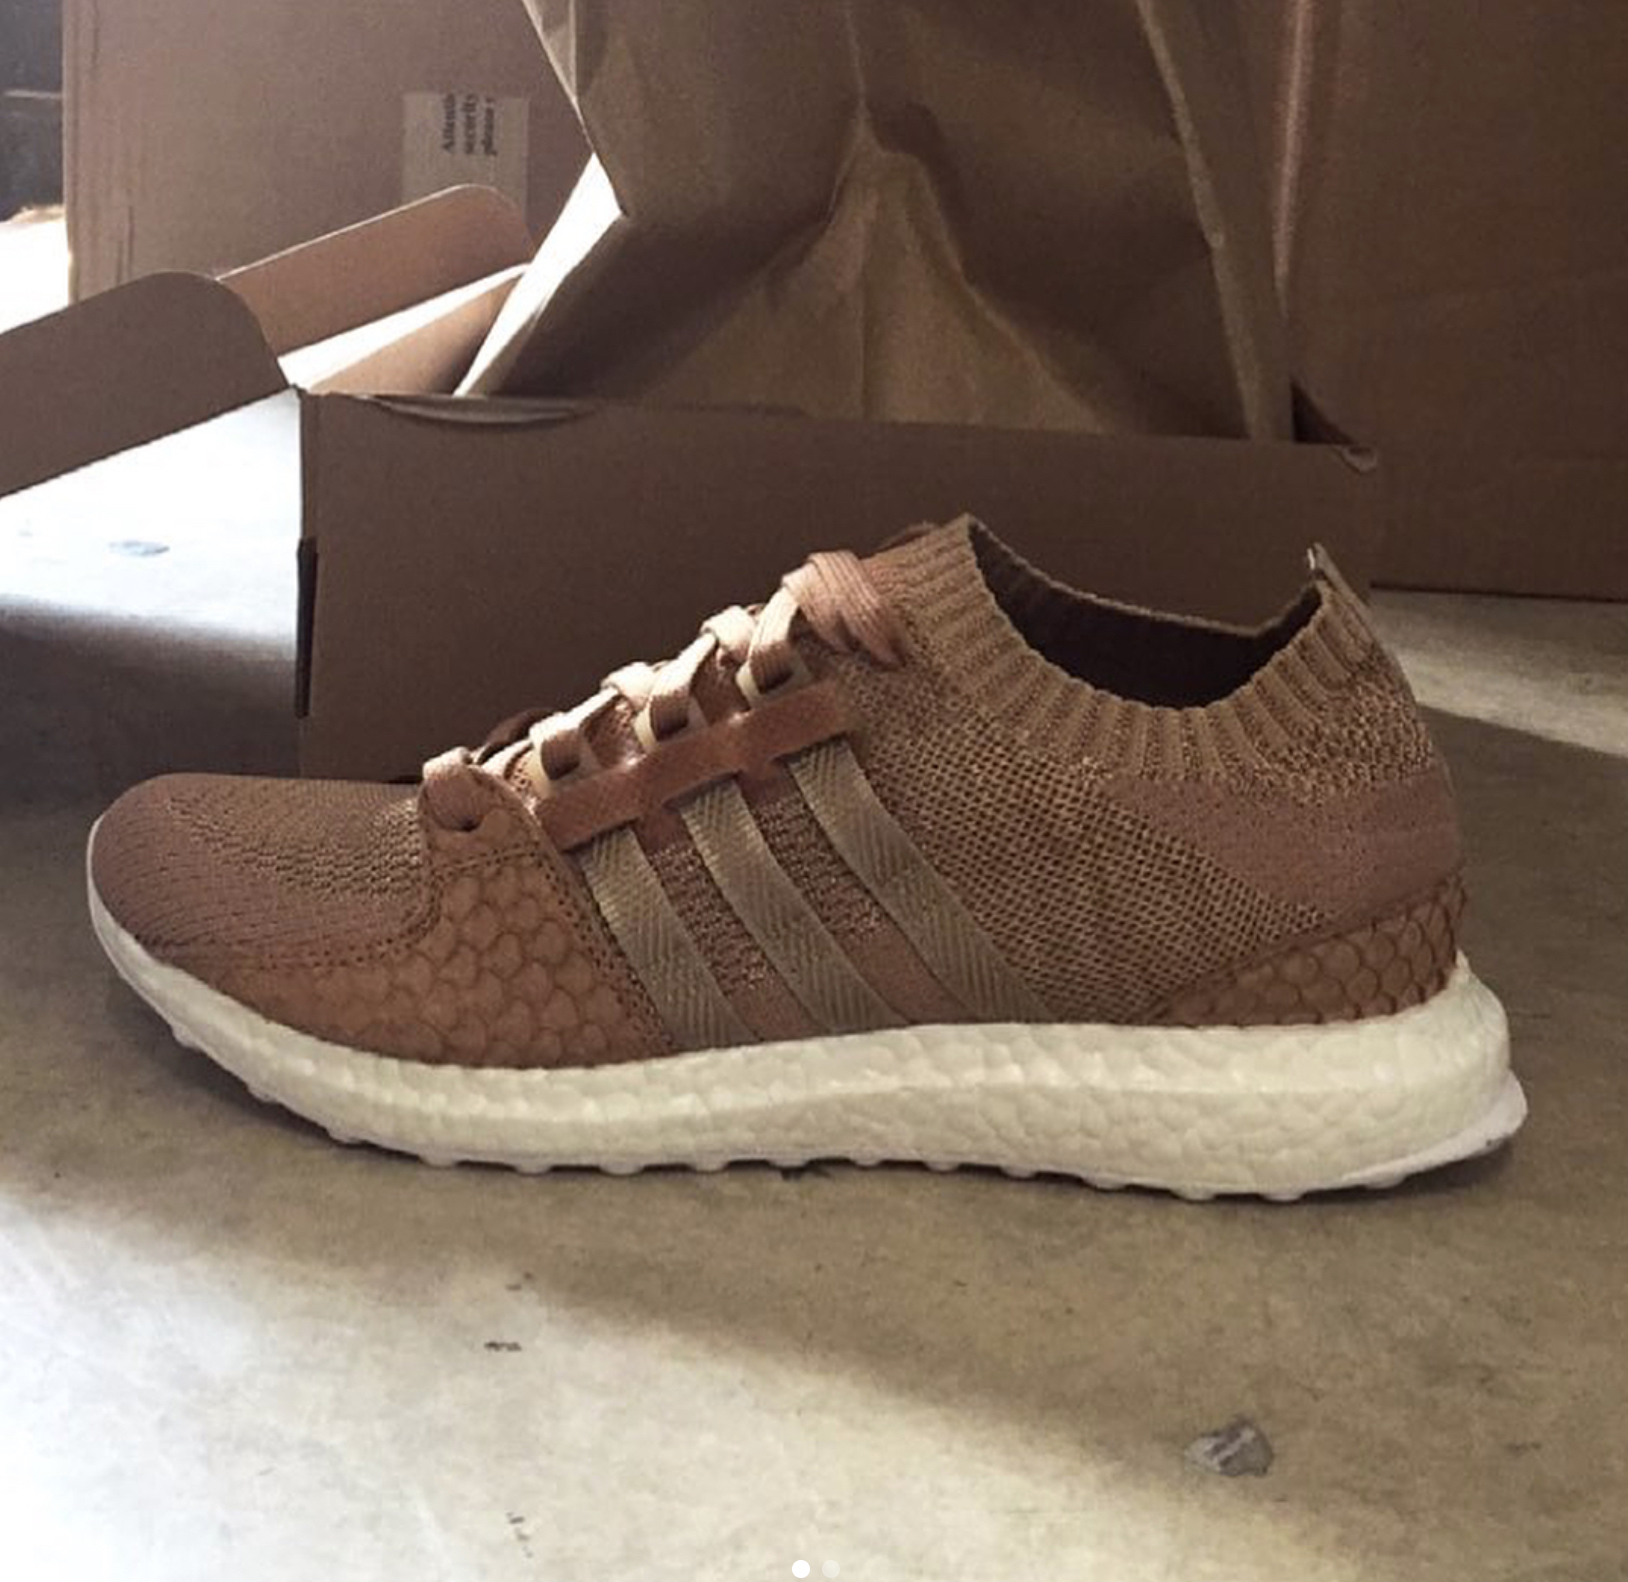 online retailer cbee6 034b4 There May Be Another Pusha T UltraBoost EQT Support King ...